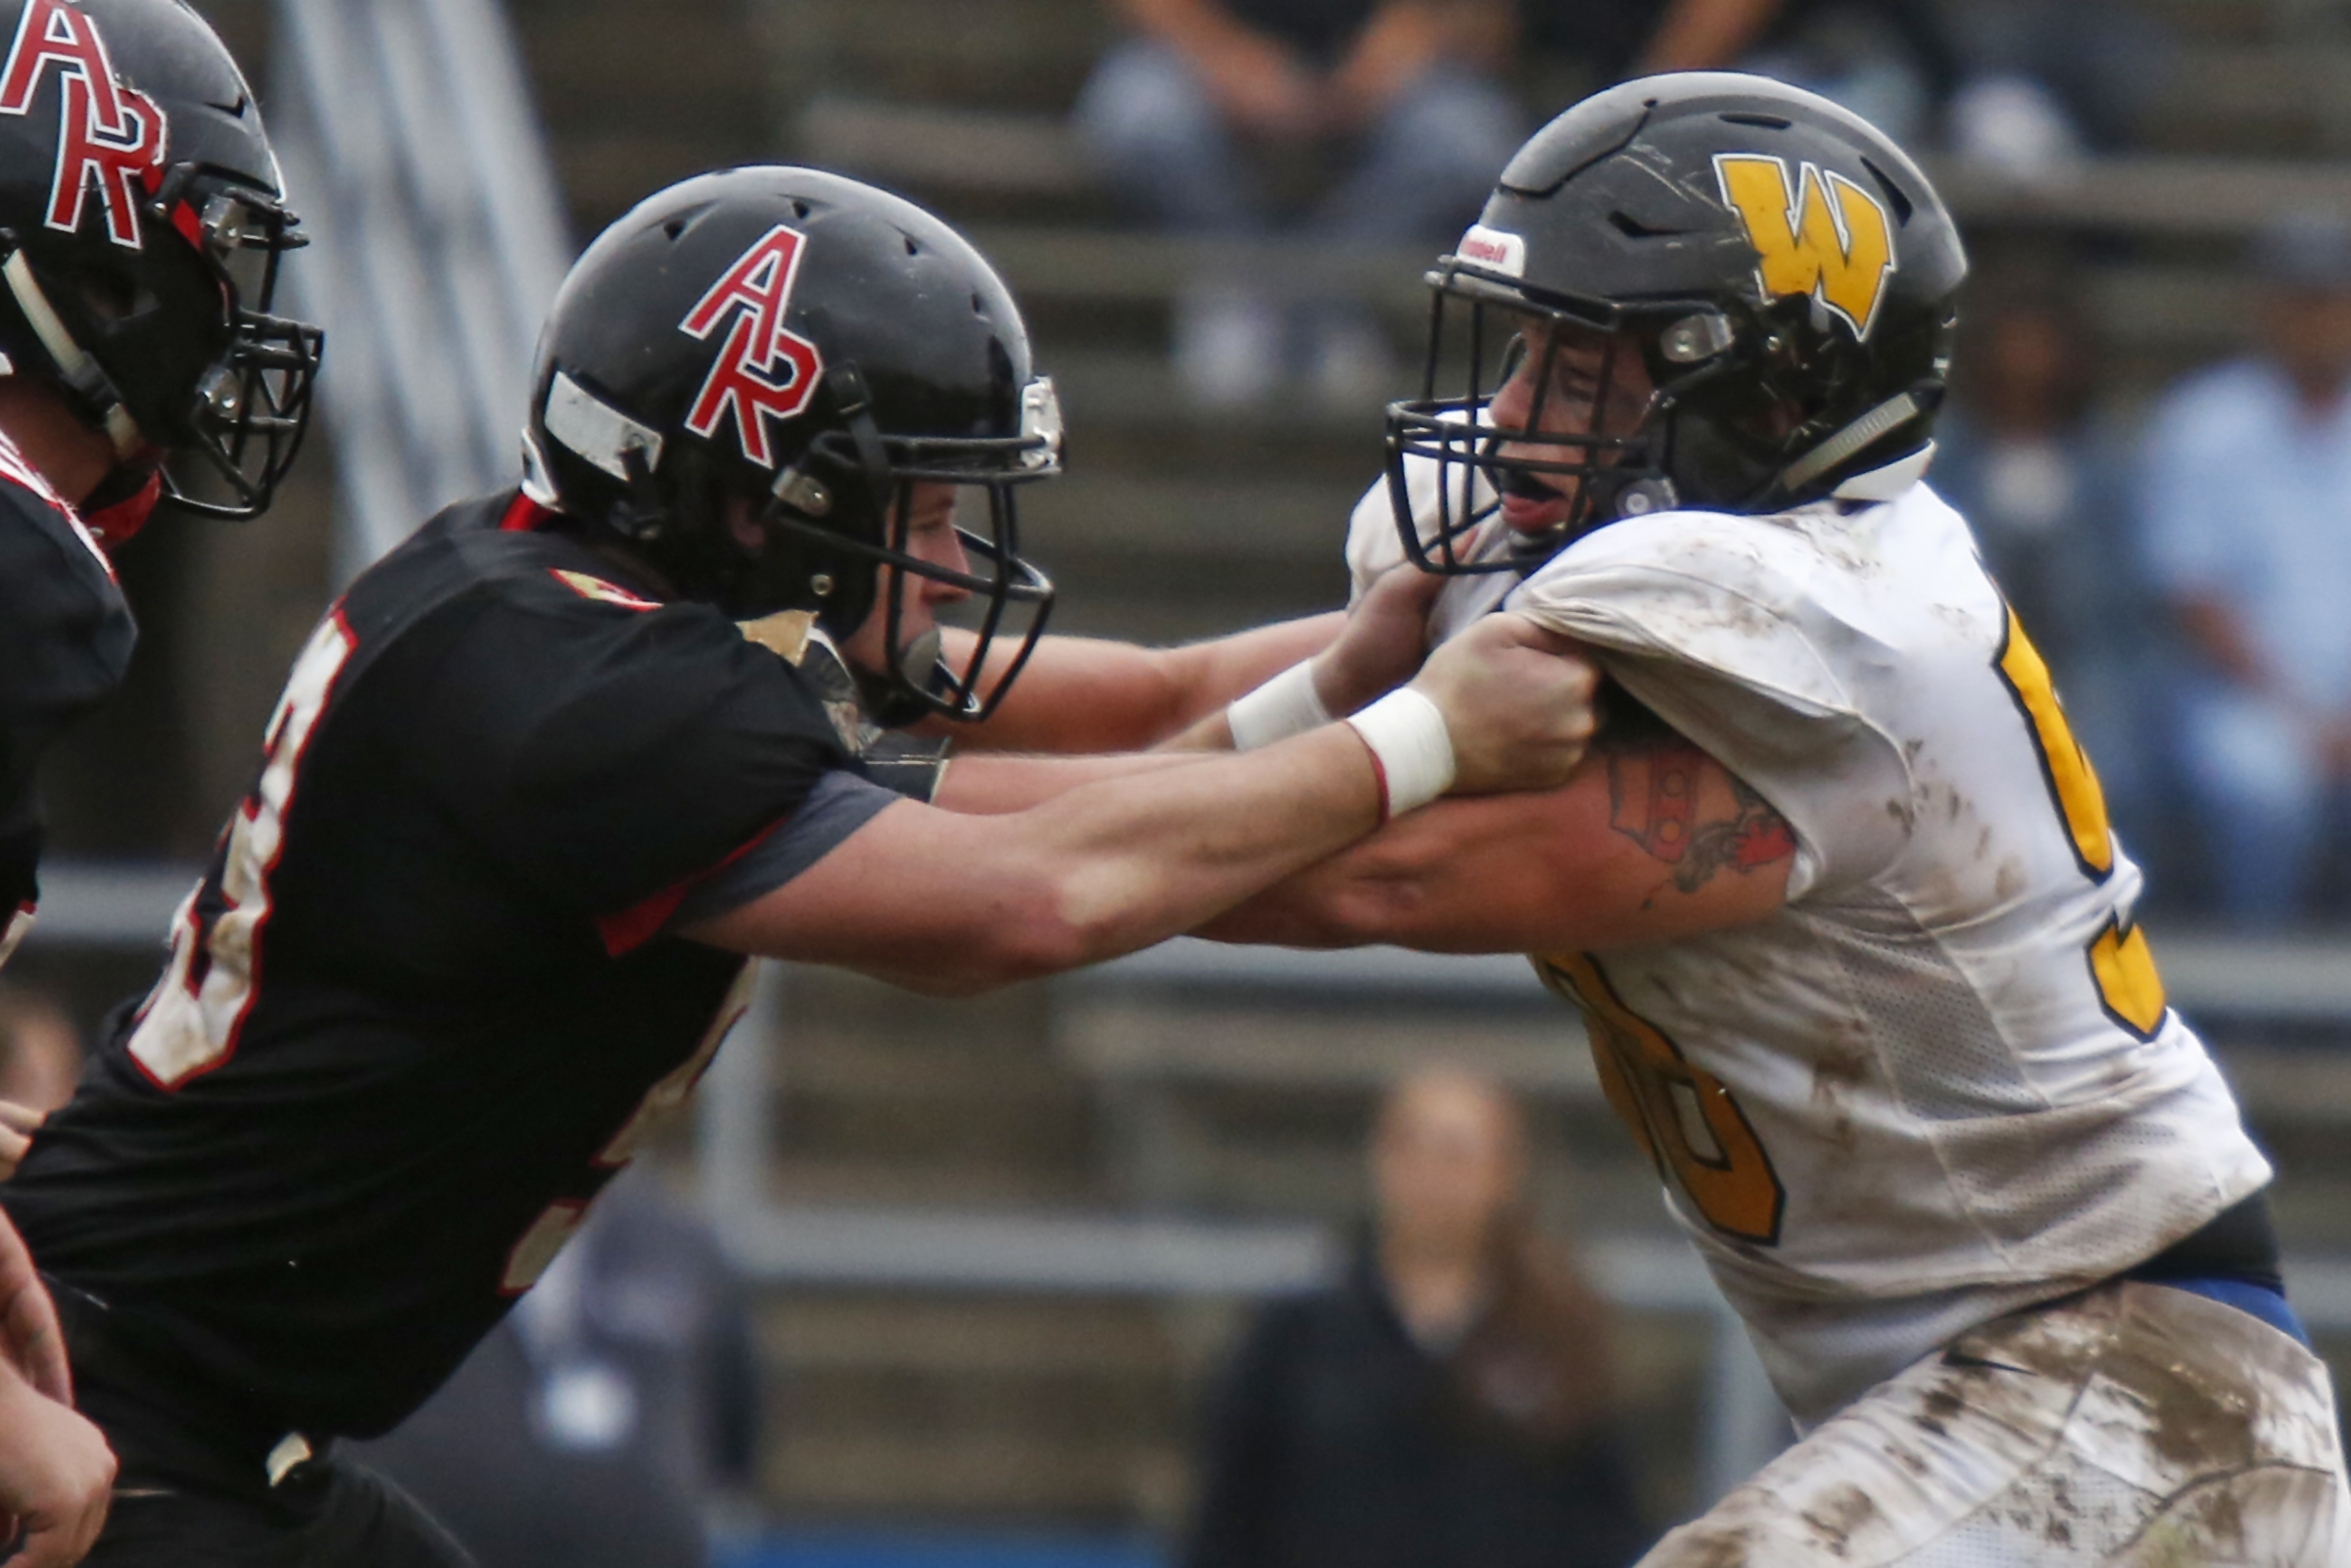 Archbishop Wood defensive lineman Connor Bishop (right) battles Archbishop Ryan offensive lineman Chris Brown during the third quarter of a Catholic League Red Division football game Saturday, Oct. 6, 2018, at George Washington. Wood went on to win, 27-7.